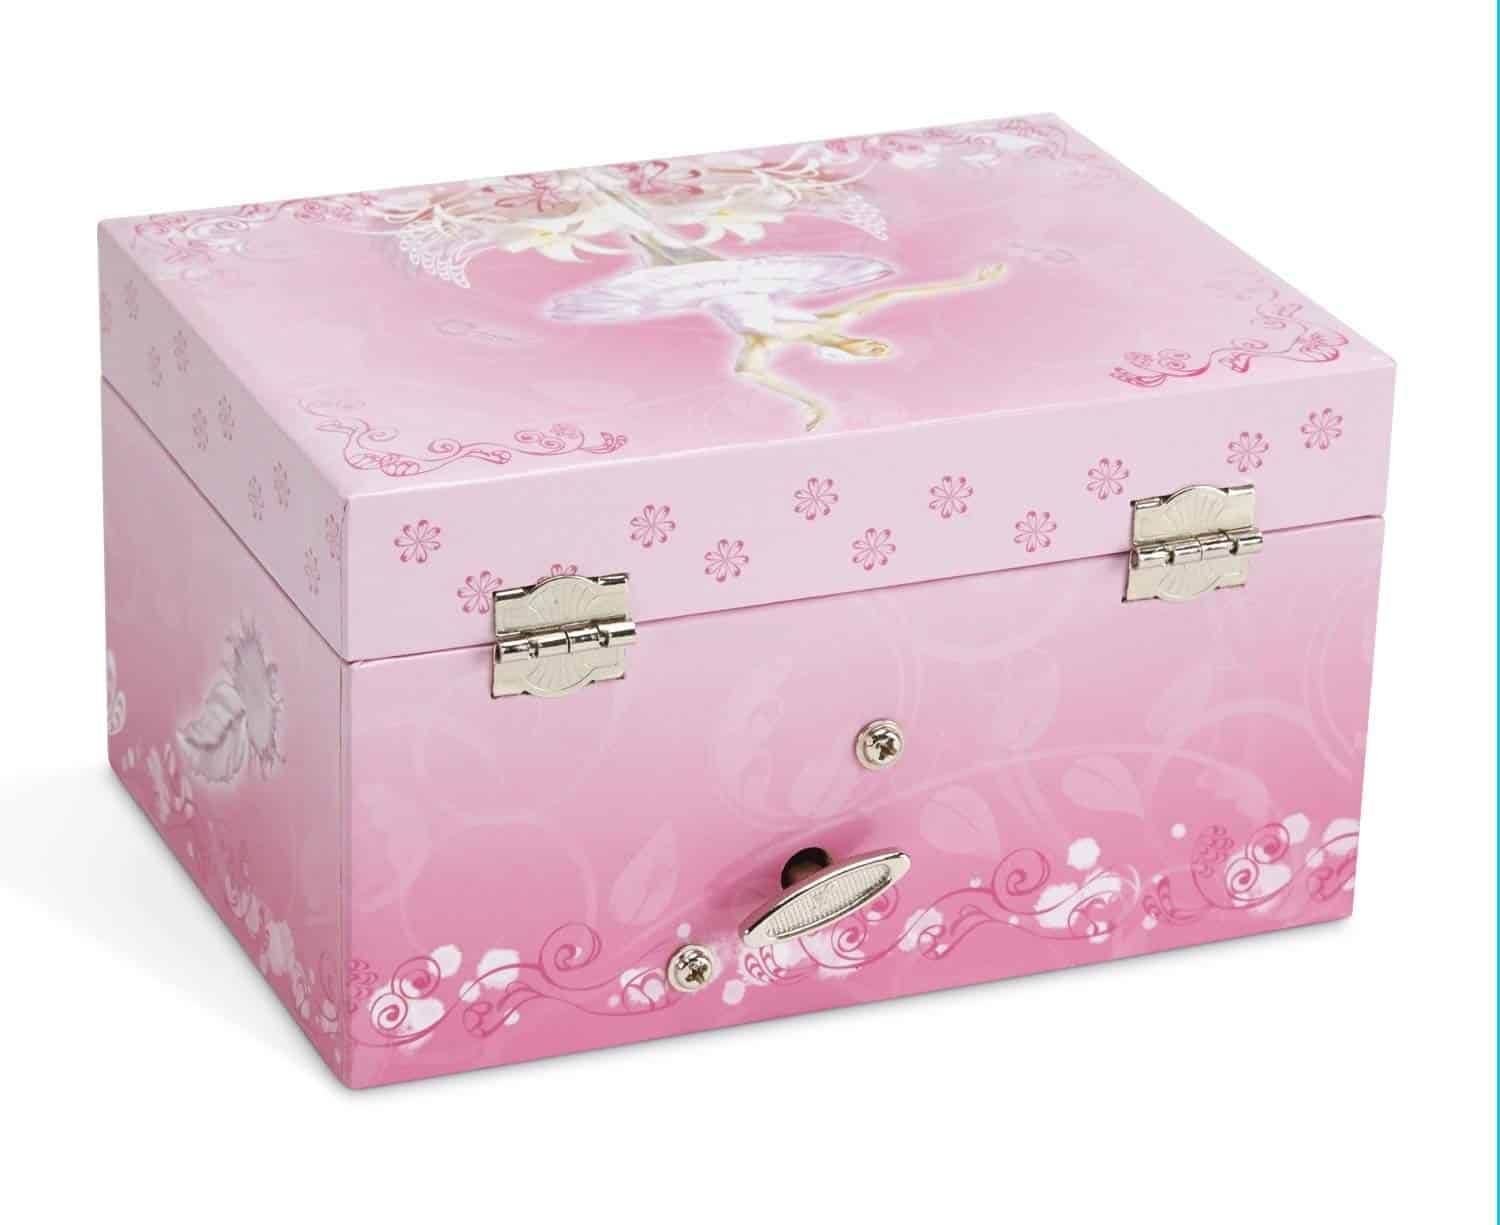 JewelKeeper Girls Musical Jewellery Storage Box with Twirling Fairy Blue and White Star Design Swan Lake Tune